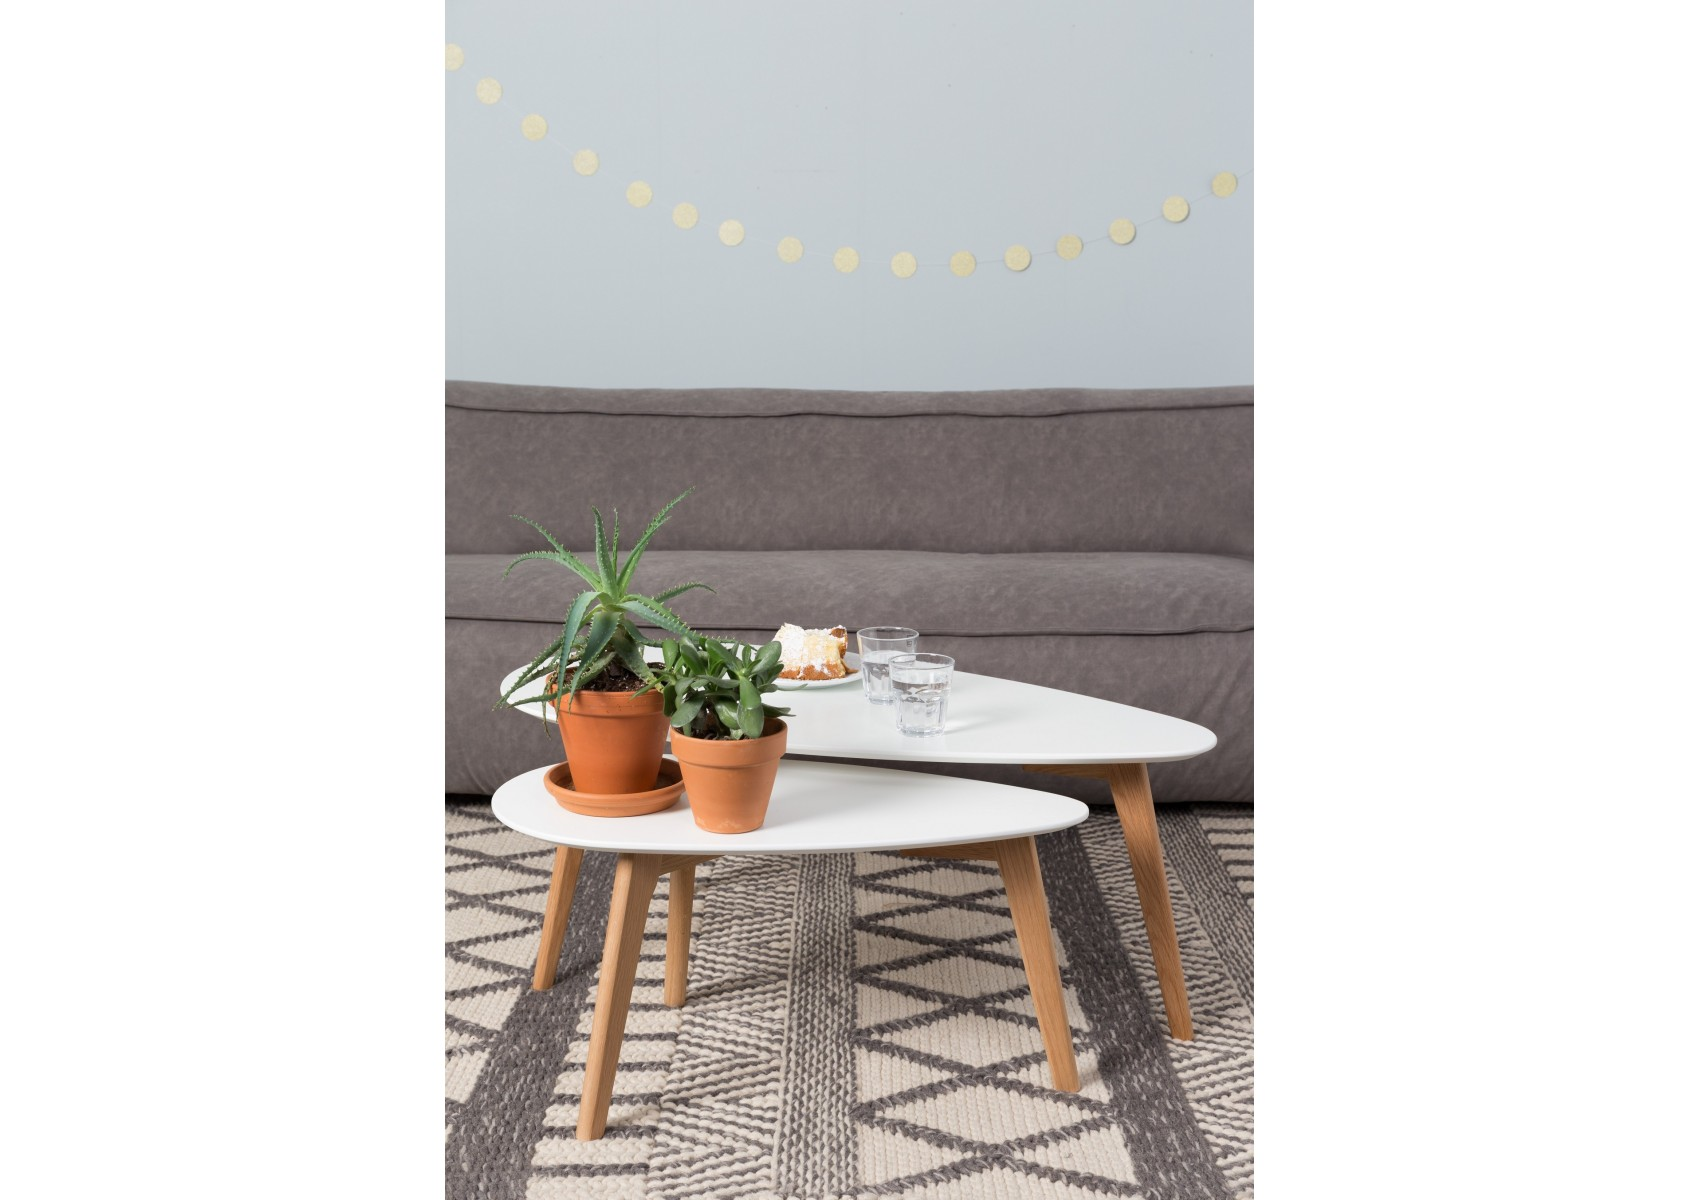 Tables basse drop scandinave laqu e blanche for Table basse scandinave laquee